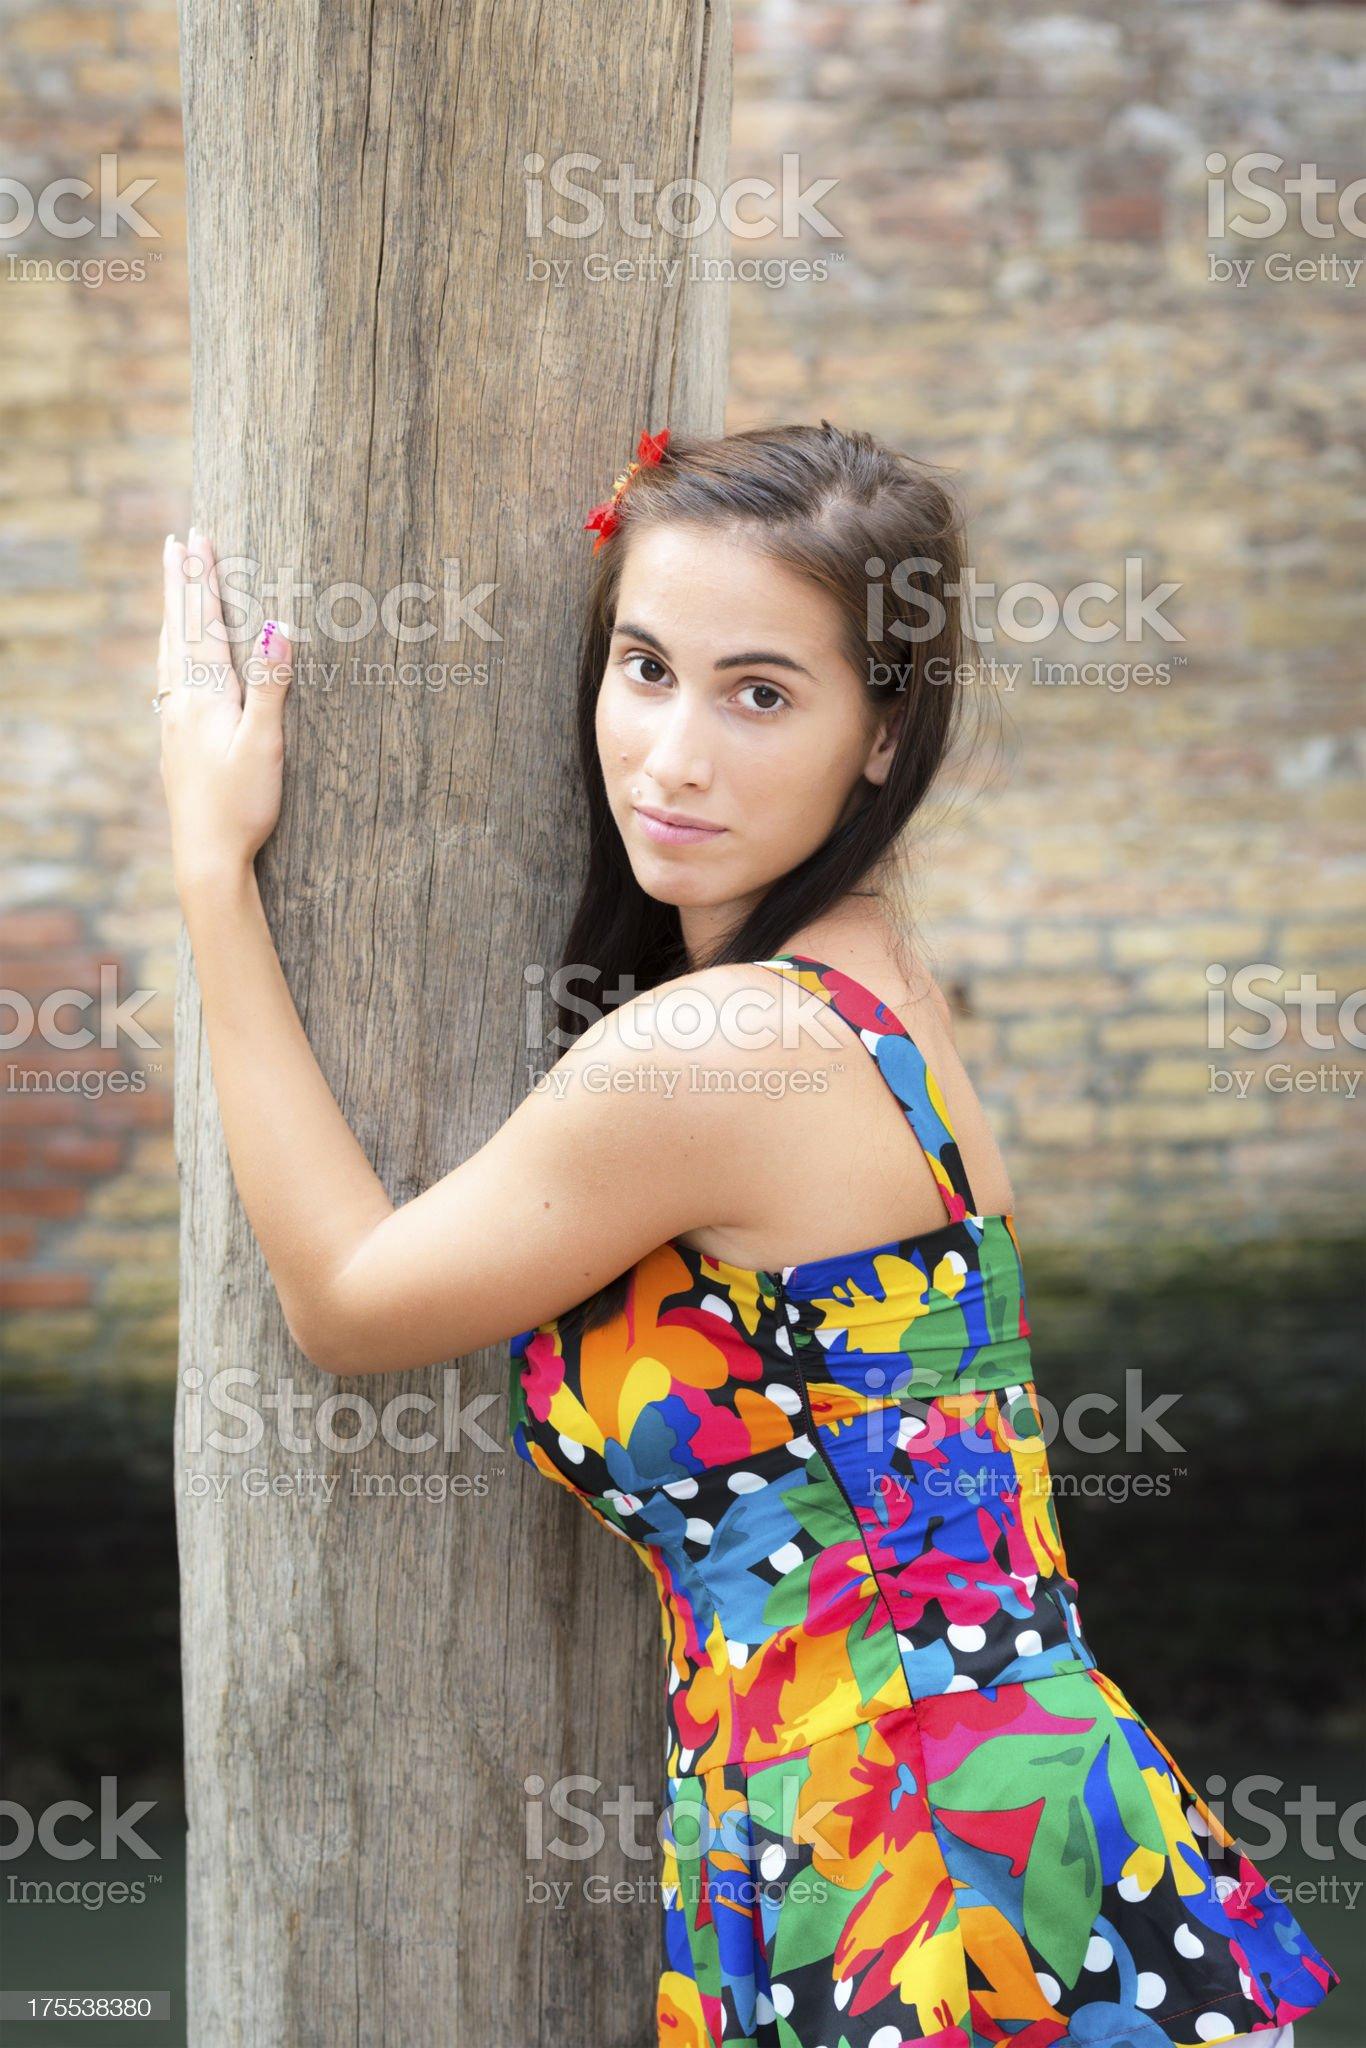 Woman in Floral Pattern Dress Embracing Wood Pillar, Venice Italy royalty-free stock photo